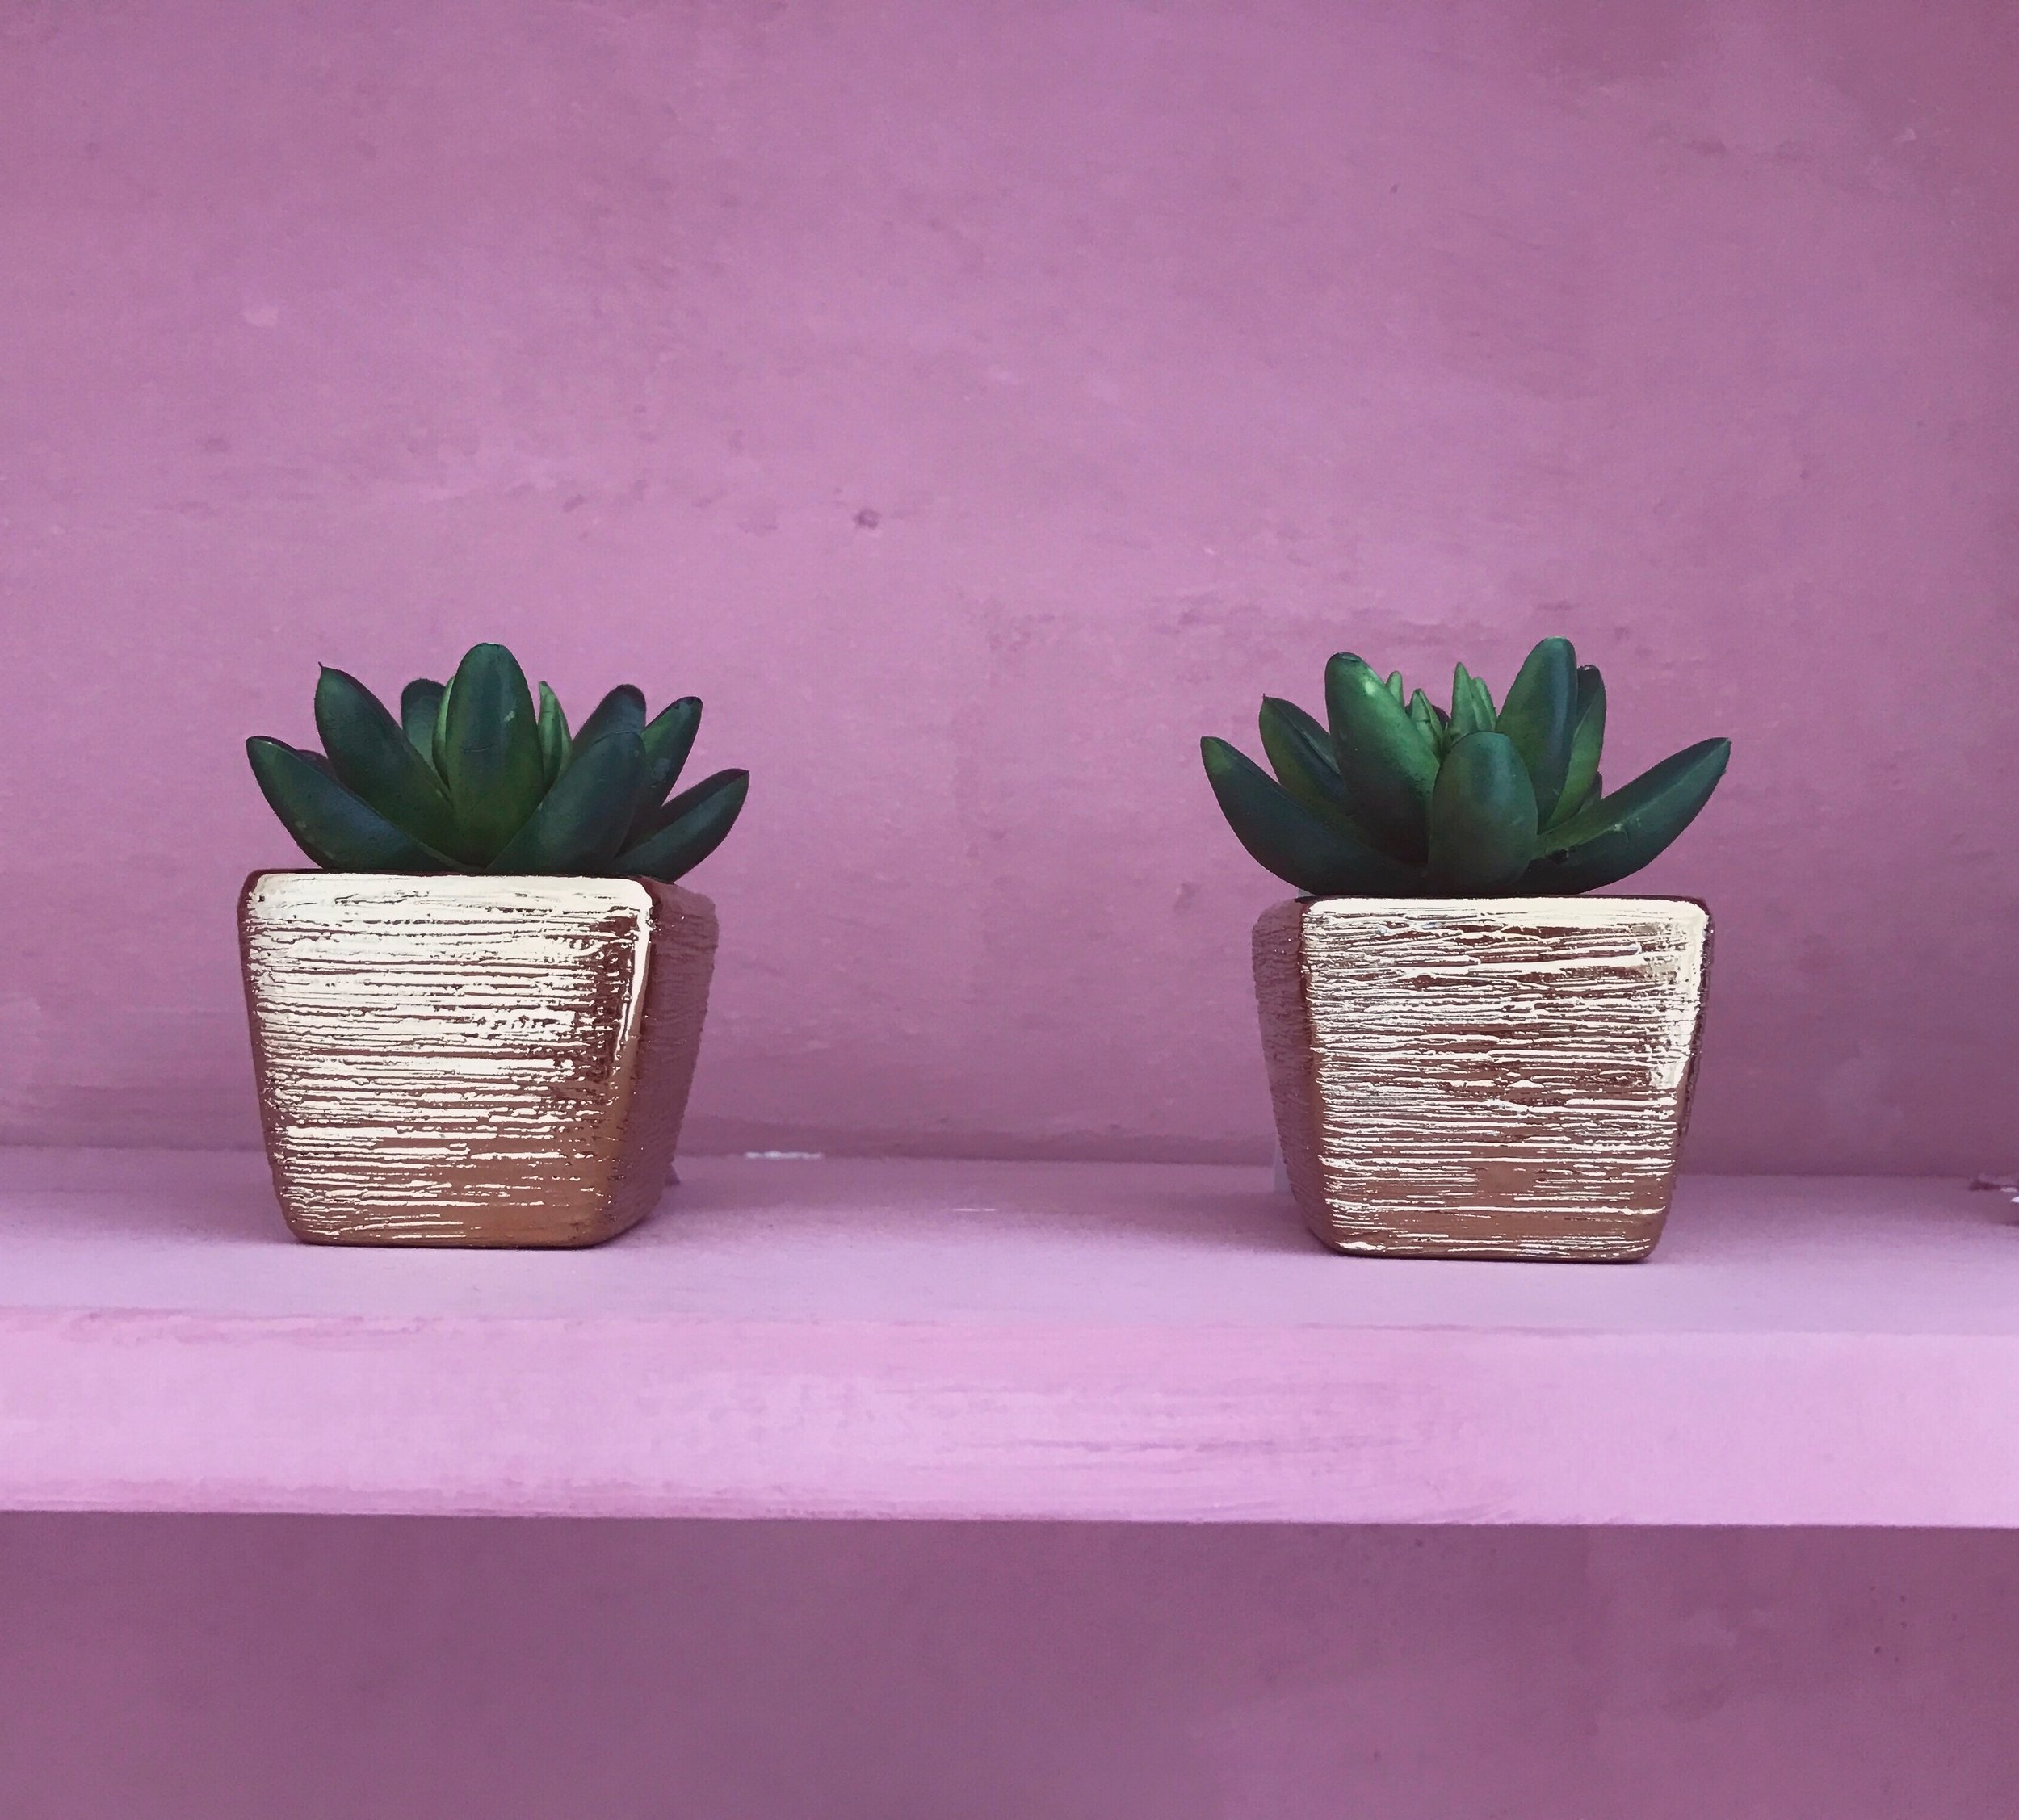 Affordable high street homeware ideas and inspiration